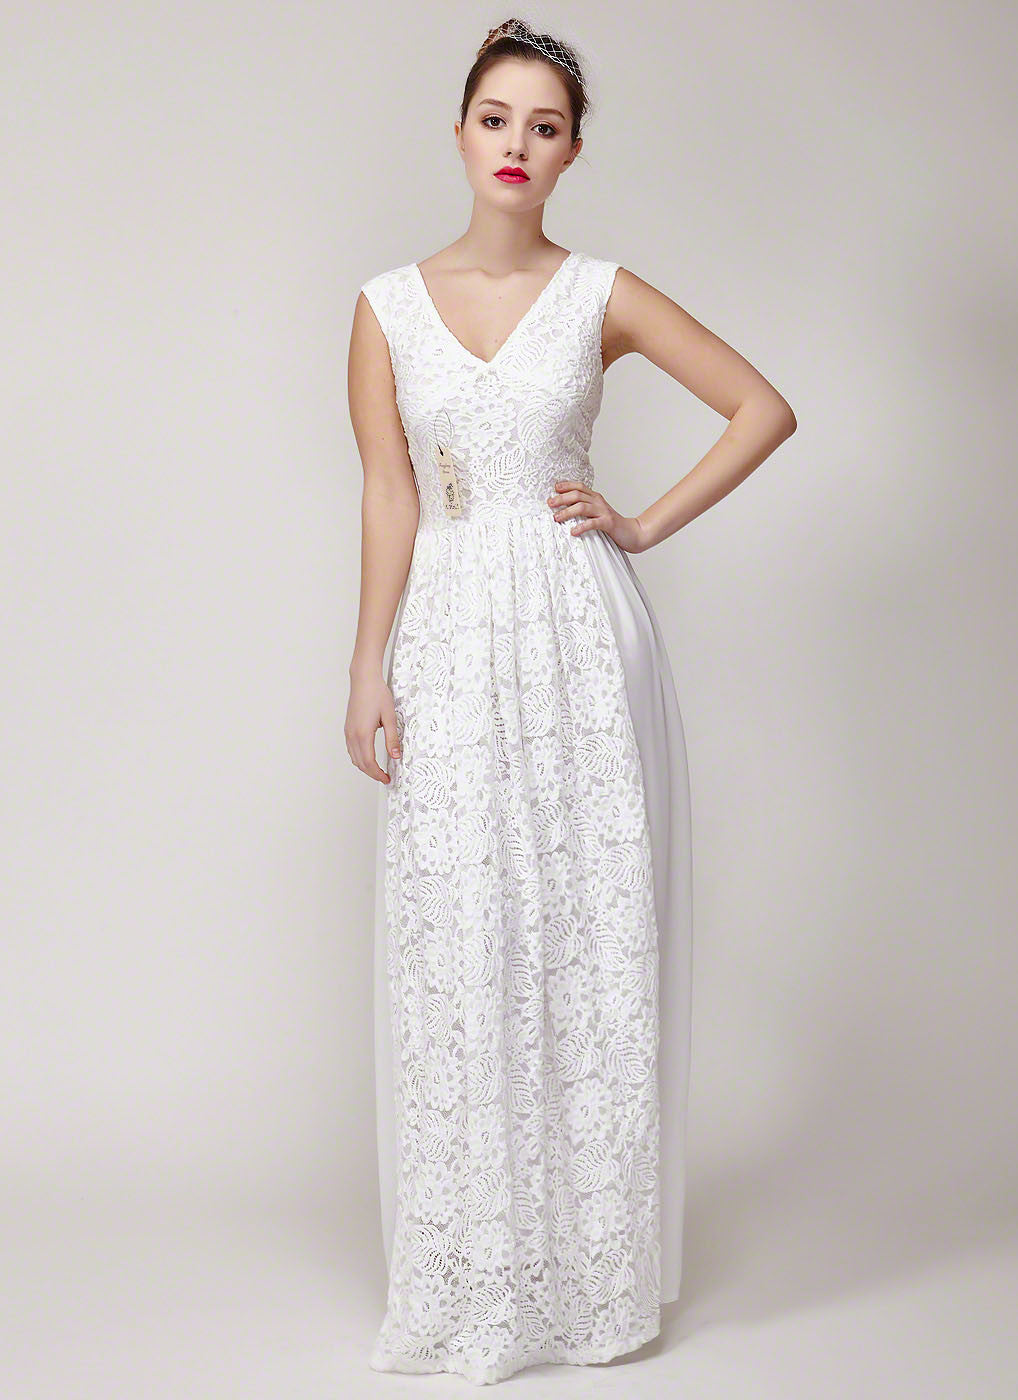 White V Neck Floral Lace Formal Evening Dress with Empire Waistline ...